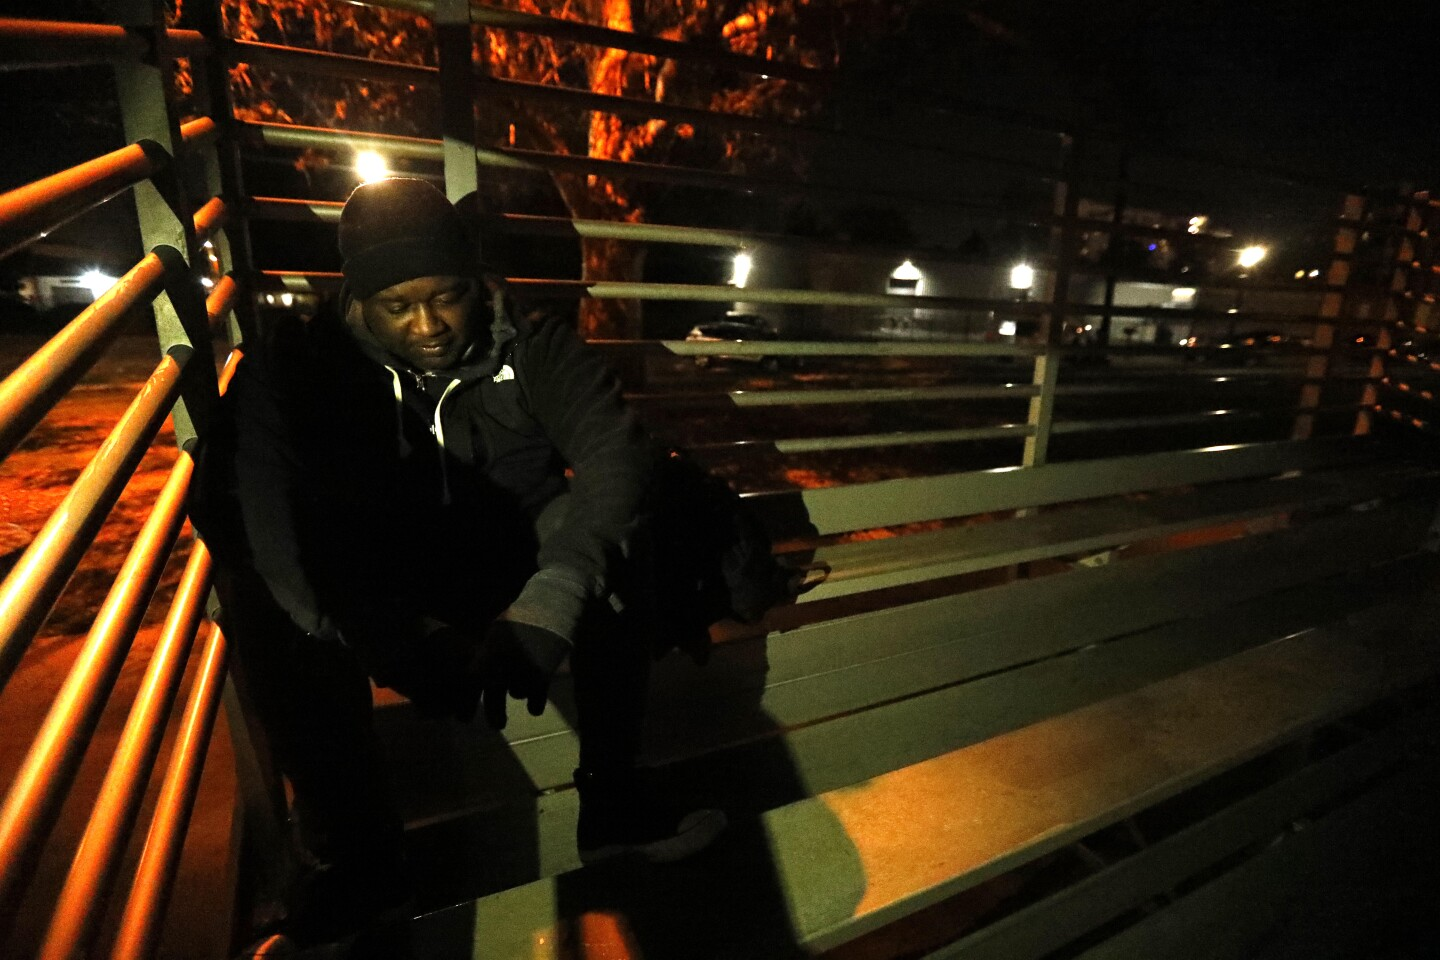 """NORTH HOLLYWOOD, CA - JANUARY 21, 2020 - Gospel musician Clemmie Williams, 34, lives homeless in North Hollywood Park on January 21, 2020. Williams has been working on part time jobs but it's not enough to make first and last for an apartment he says. """"It's a struggle to get back to normalcy,"""" Williams said. Williams was photographed on the first night of the 2020 LA County homeless count. On Tuesday, volunteers with the focused on the San Gabriel and San Fernando valleys. Other swaths of the region, such as the South Bay and Antelope Valley, will be covered Wednesday and Thursday.. The homeless count is overseen by the Los Angeles Homeless Services Authority (LAHSA) The volunteers will canvas more than 80 cities and 200 communities across L.A. County over three days to count the number of homeless people living on the streets, according to the LAHSA. Last year's count found that nearly 59,000 people were experiencing homelessness countywide, an increase of 12% from 2018. (Genaro Molina / Los Angeles Times)"""